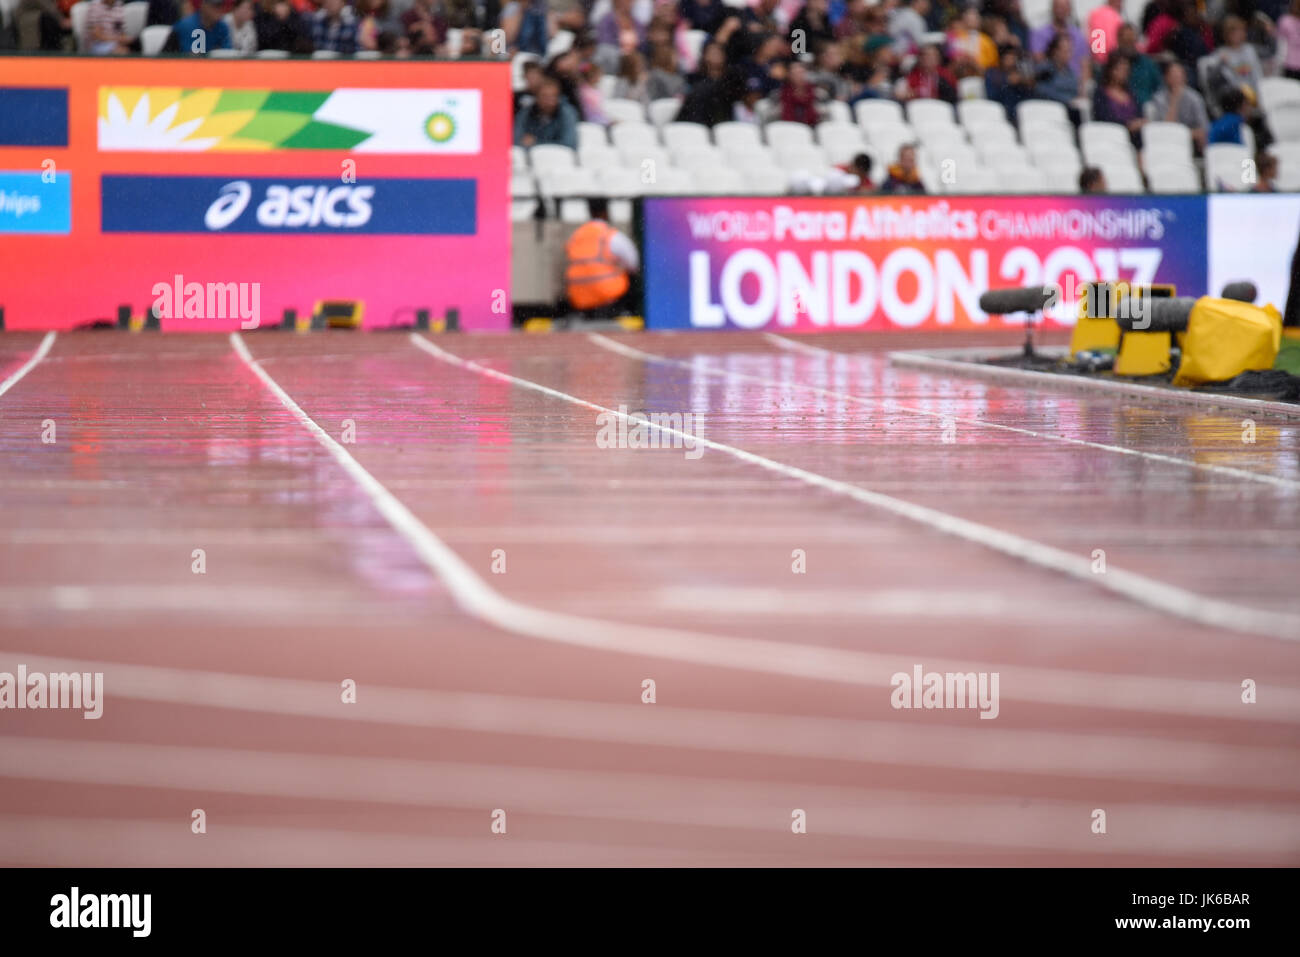 Wet track in the London Stadium at the World Para Athletics Championships Stock Photo